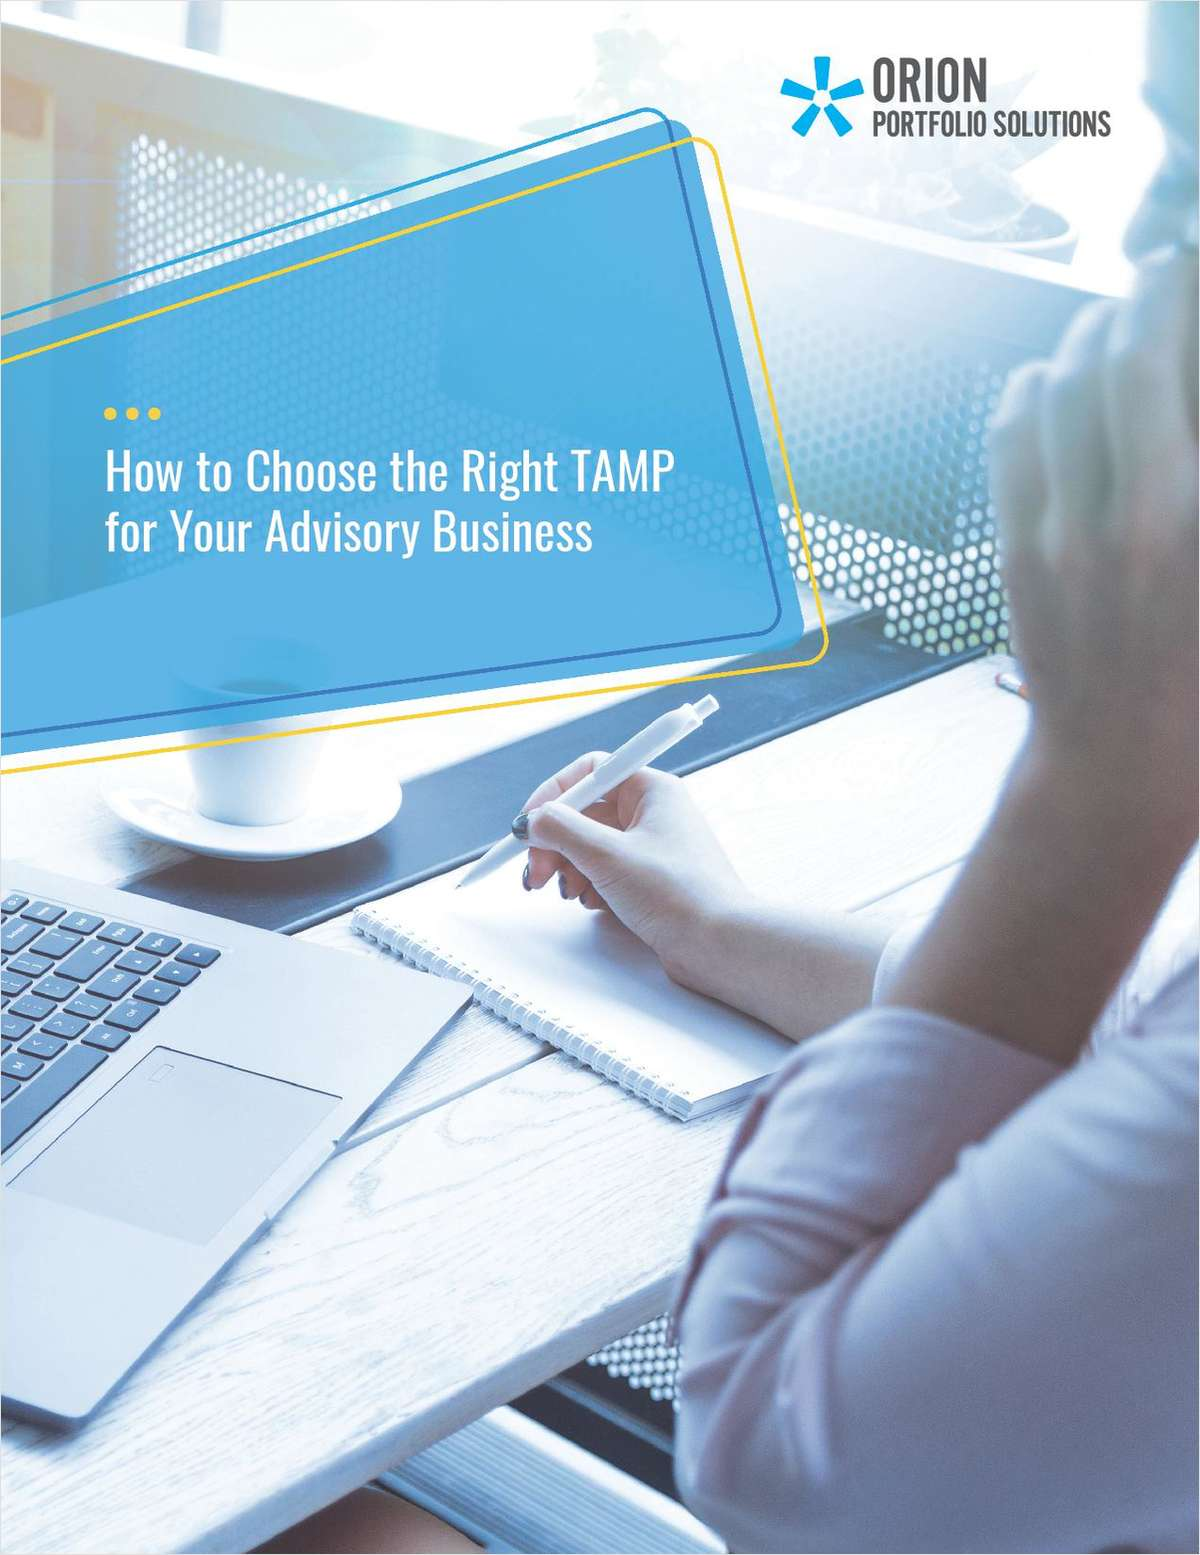 How to Choose the Right TAMP for Your Advisory Business